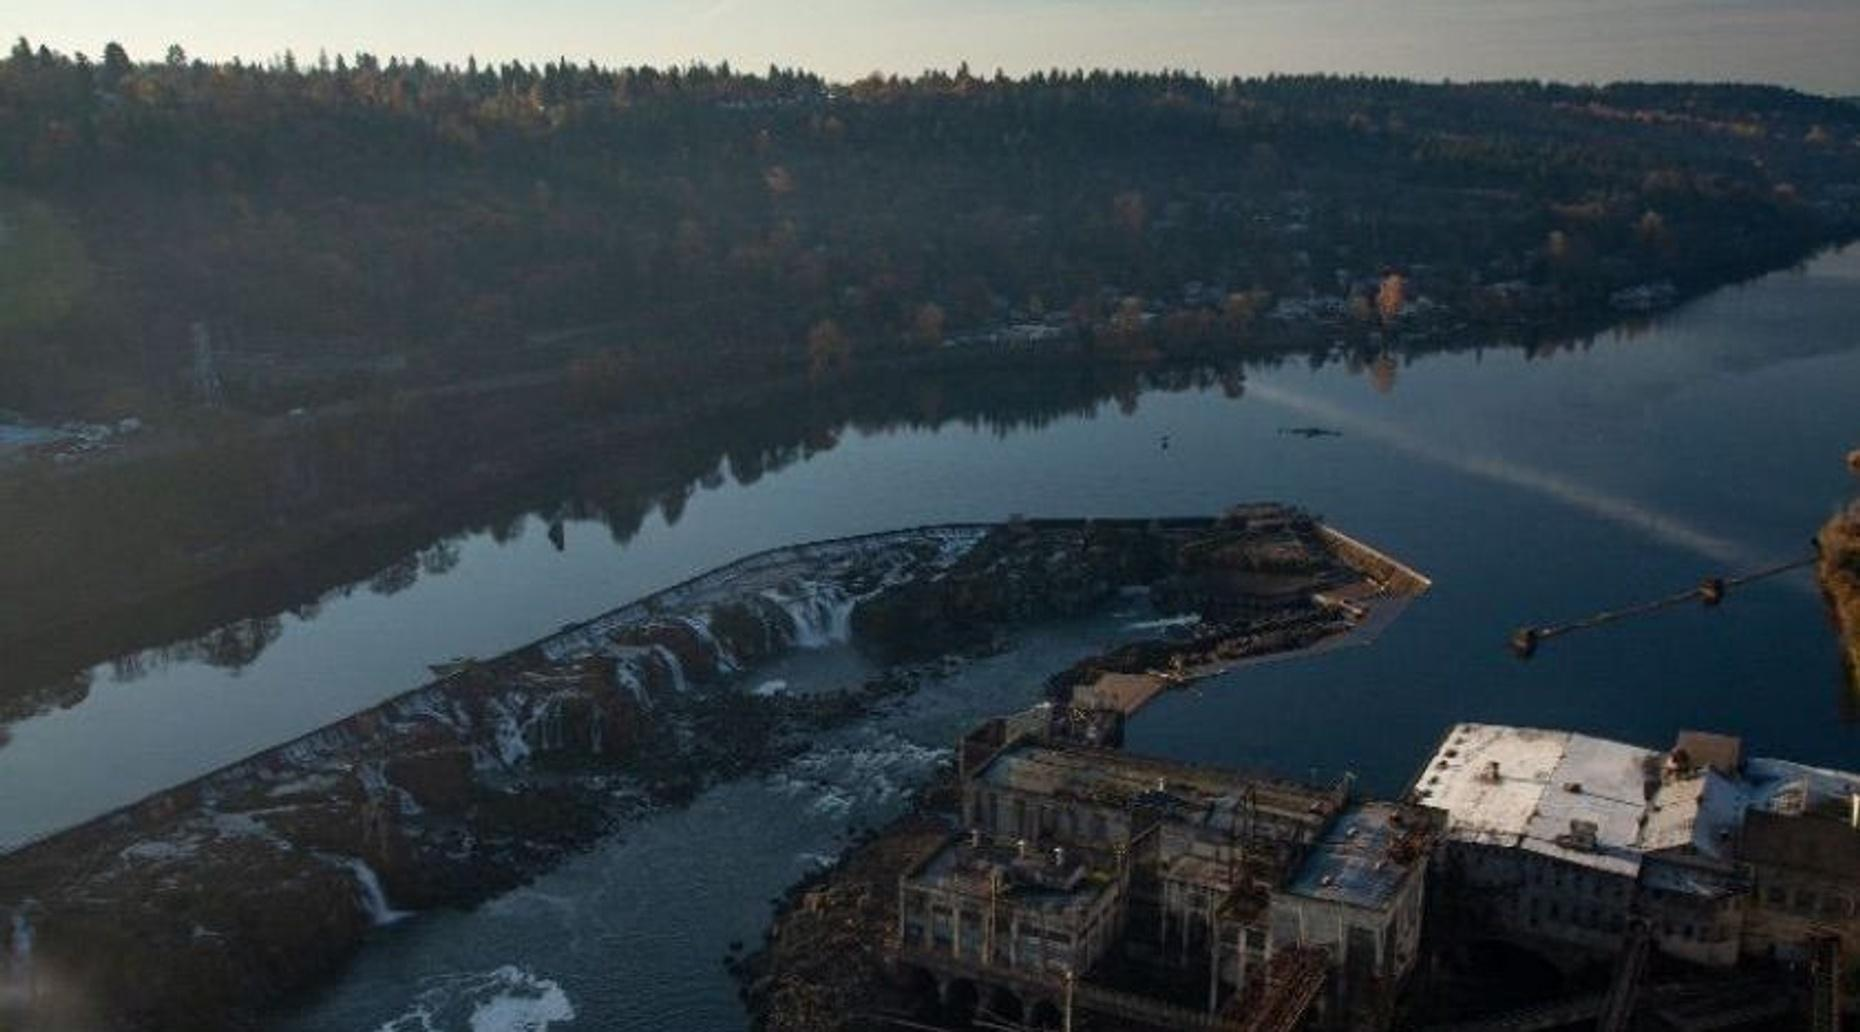 Willamette Falls Helicopter Tour